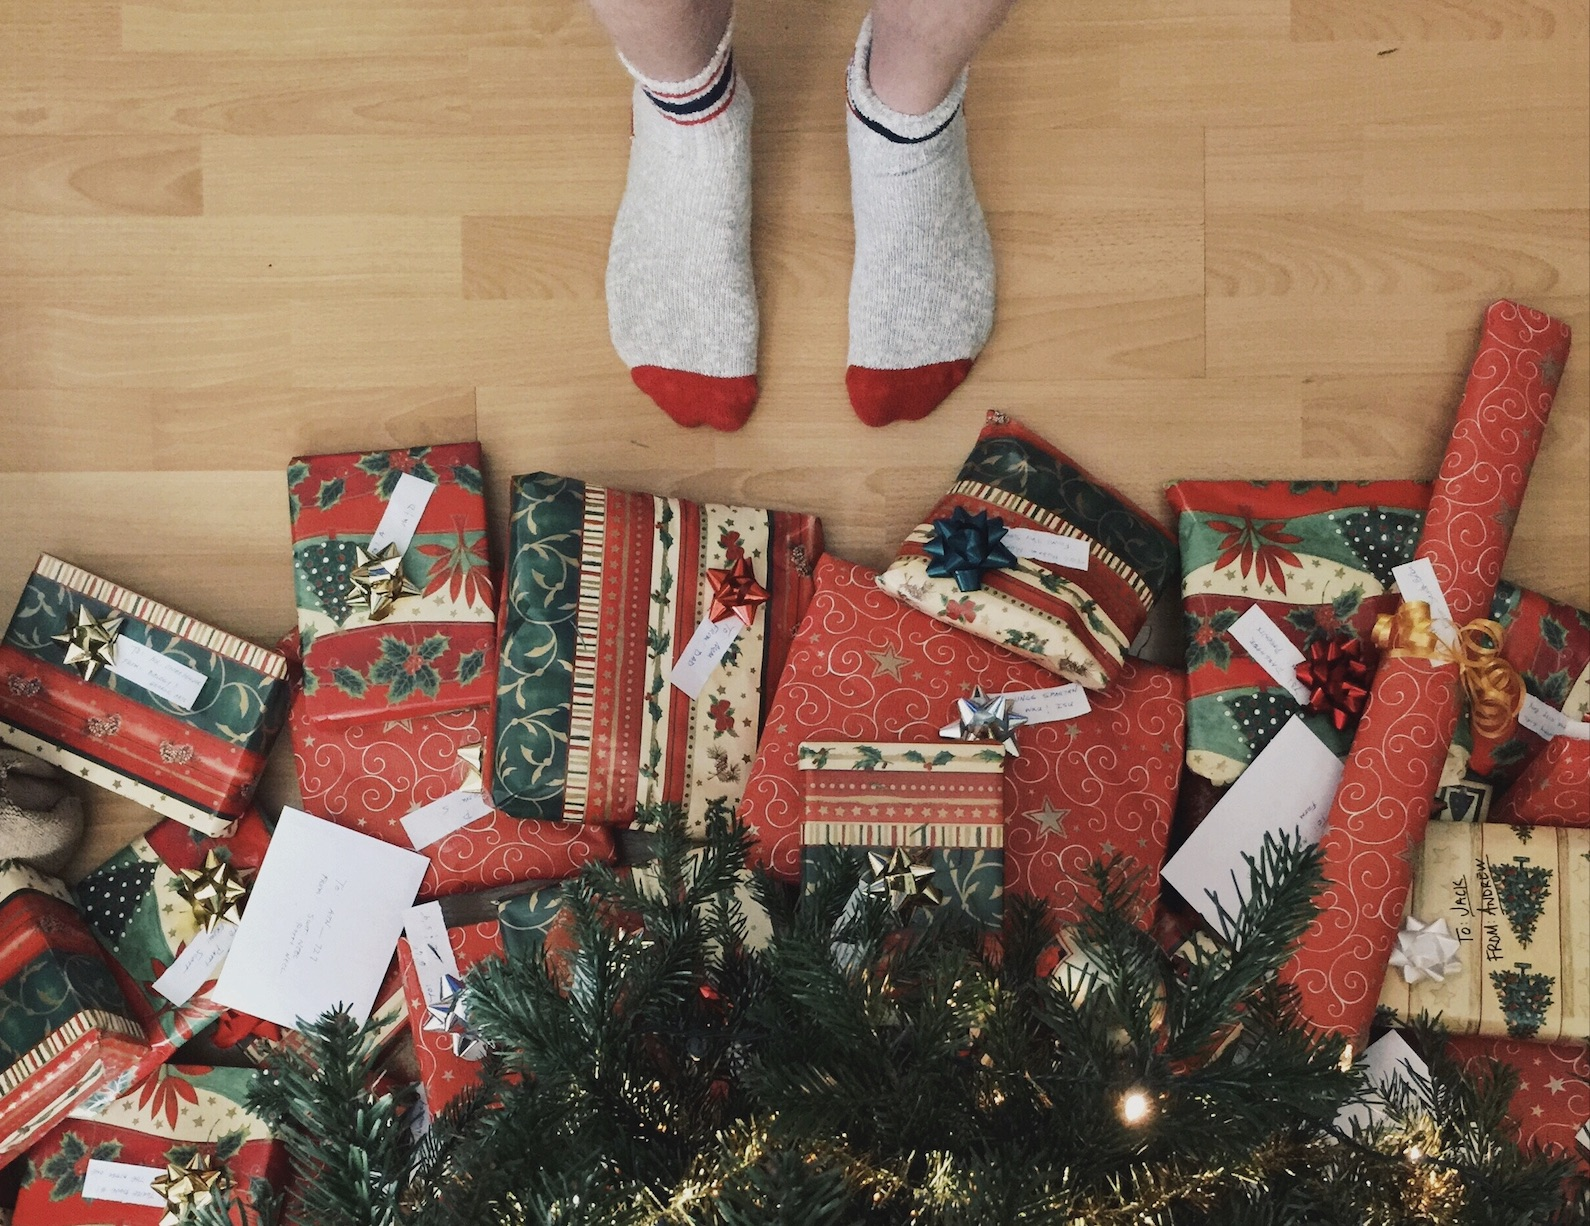 7 House of Sheens Christmas Gifts Your Mom Will Love